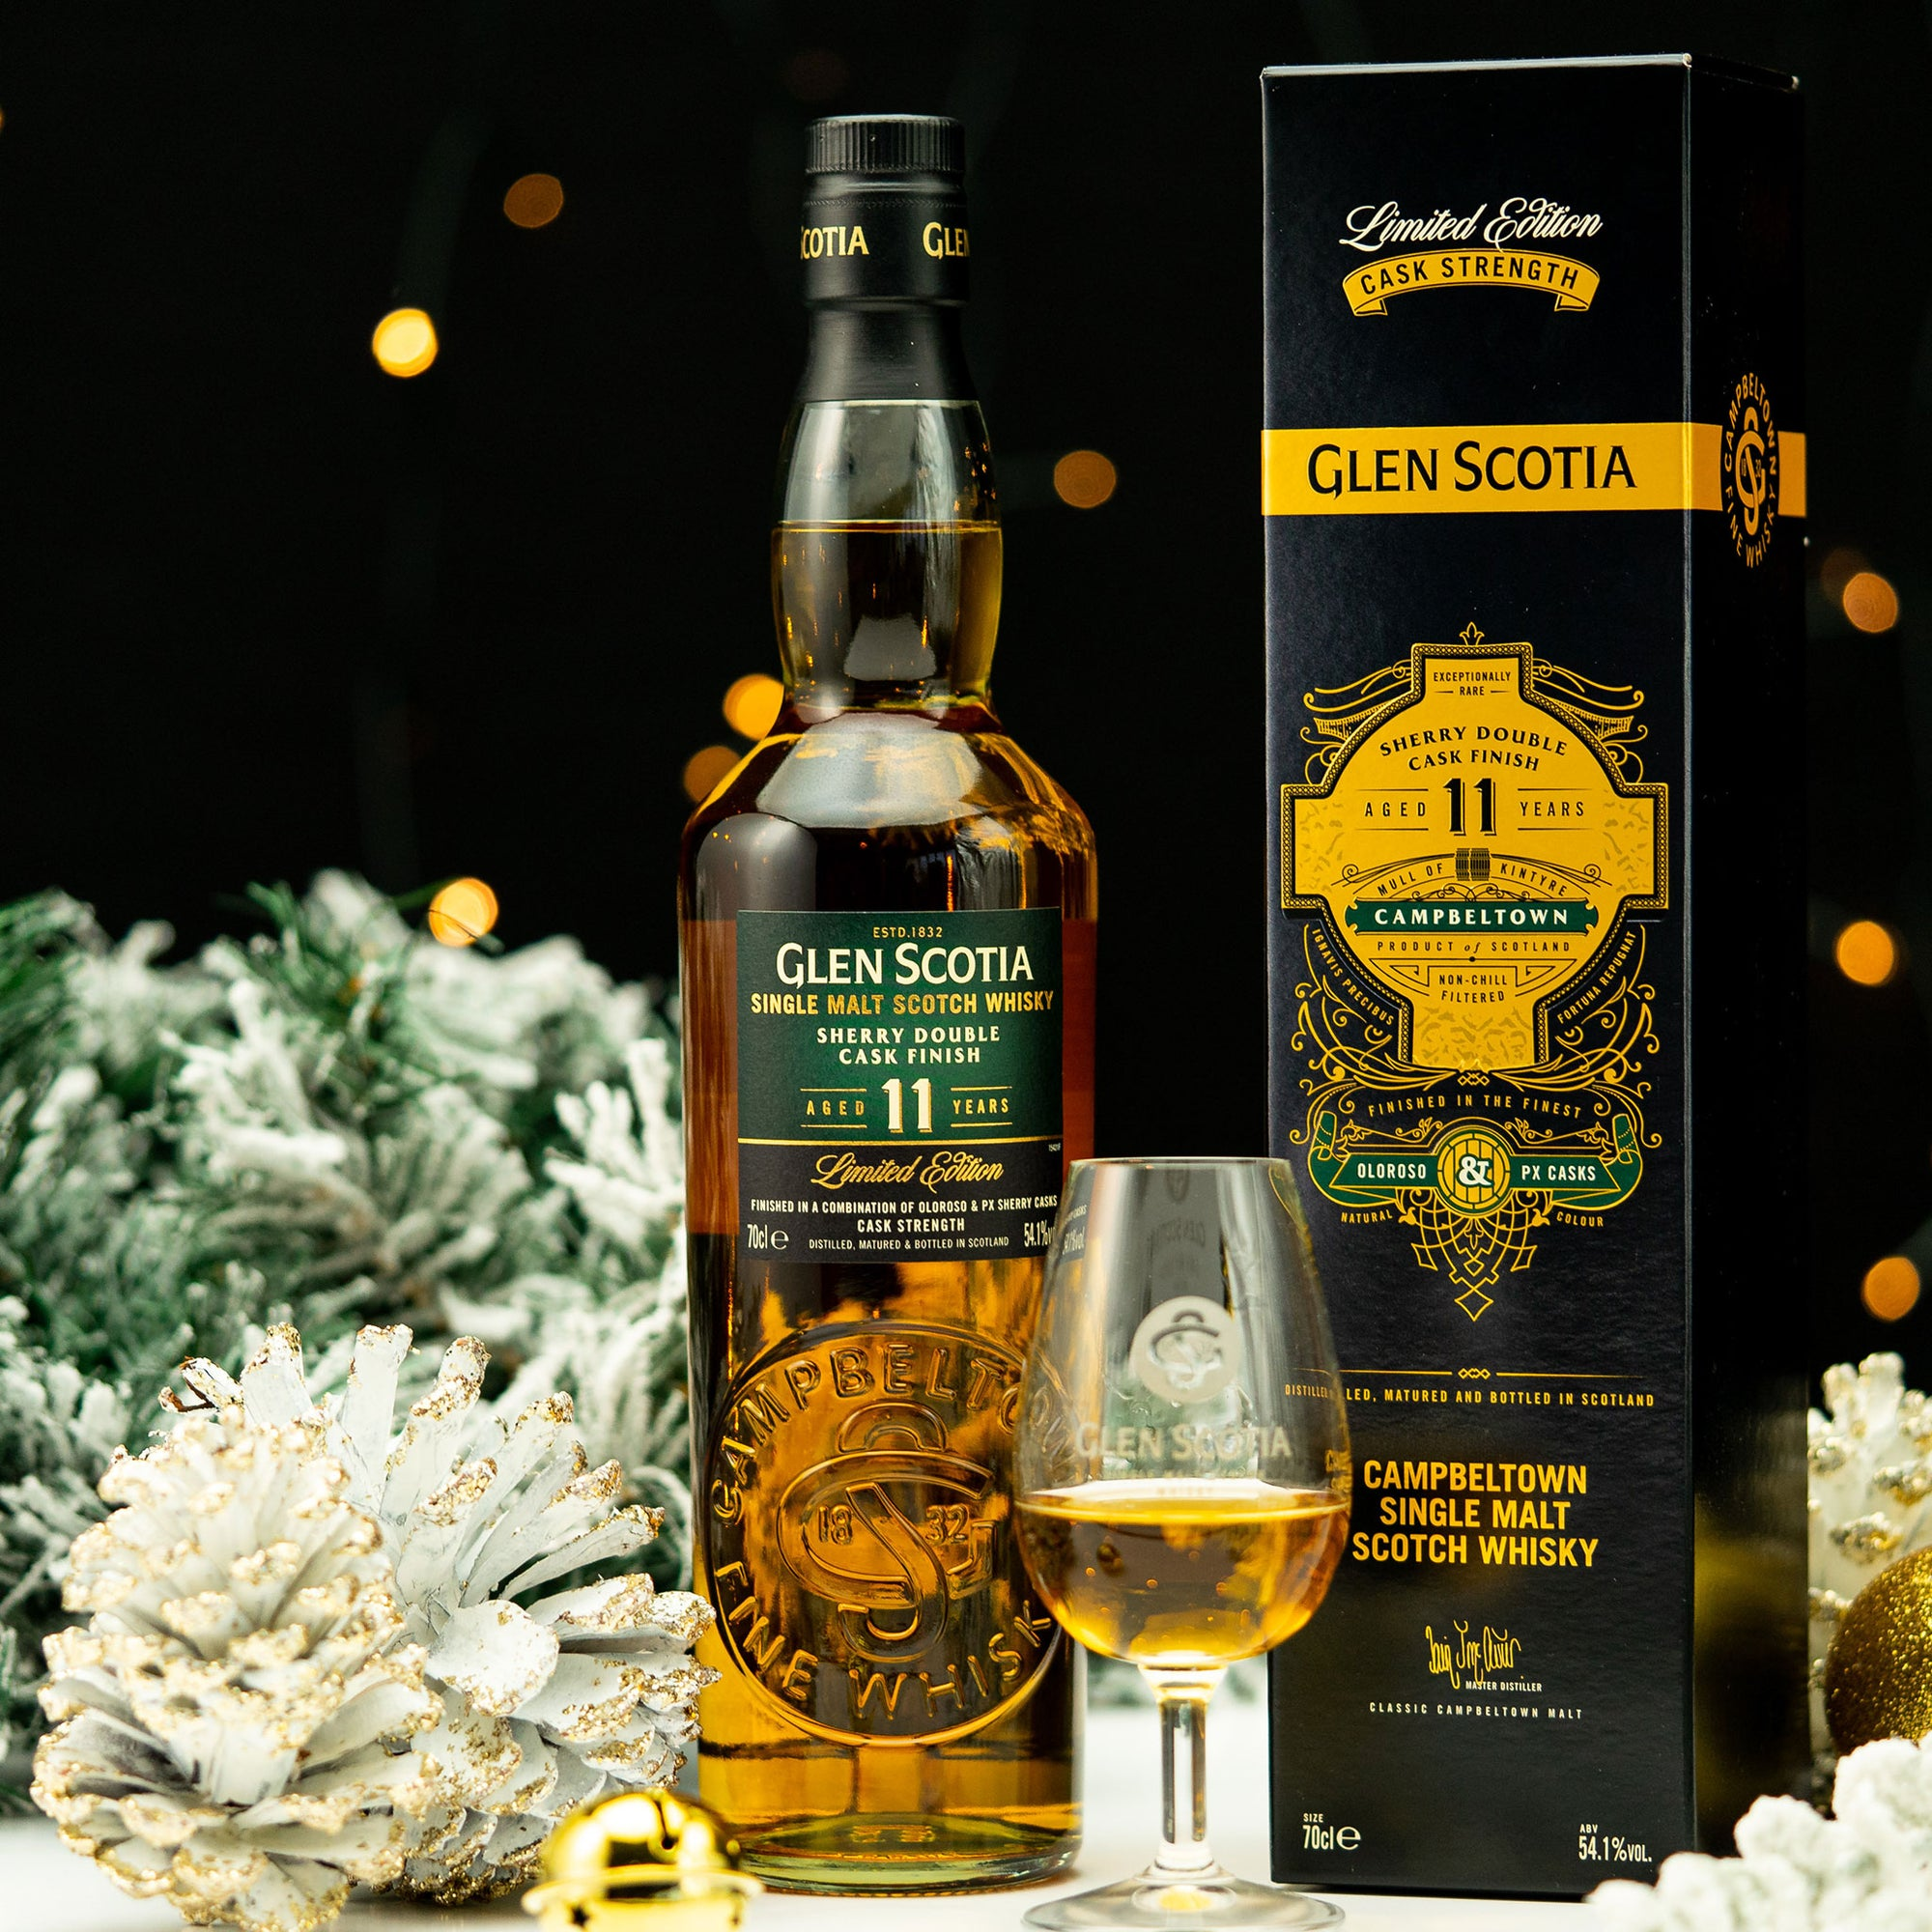 Glen Scotia Double Sherry Cask Finish